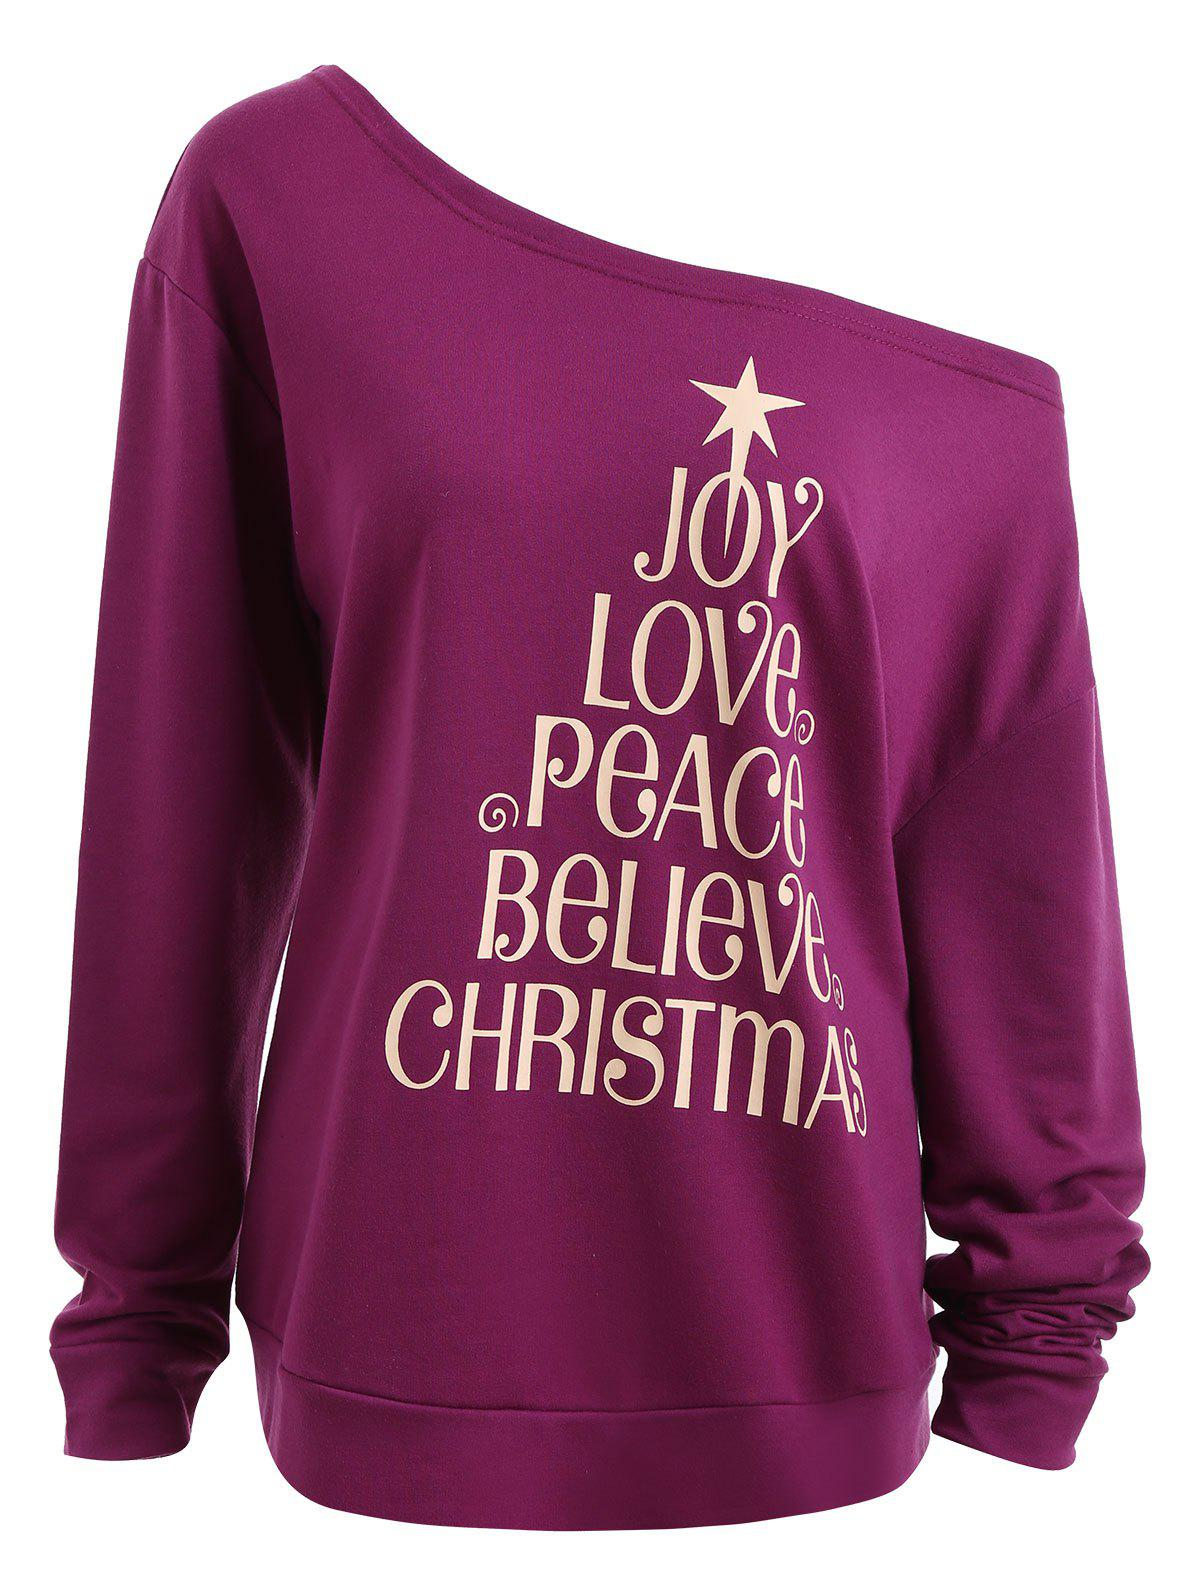 Plus Size Joy Believe Christmas Tree Skew Neck SweatshirtWOMEN<br><br>Size: 5XL; Color: PURPLE; Material: Cotton Blend,Polyester; Shirt Length: Regular; Sleeve Length: Full; Style: Fashion; Pattern Style: Letter; Season: Fall,Winter; Weight: 0.4100kg; Package Contents: 1 x Sweatshirt;